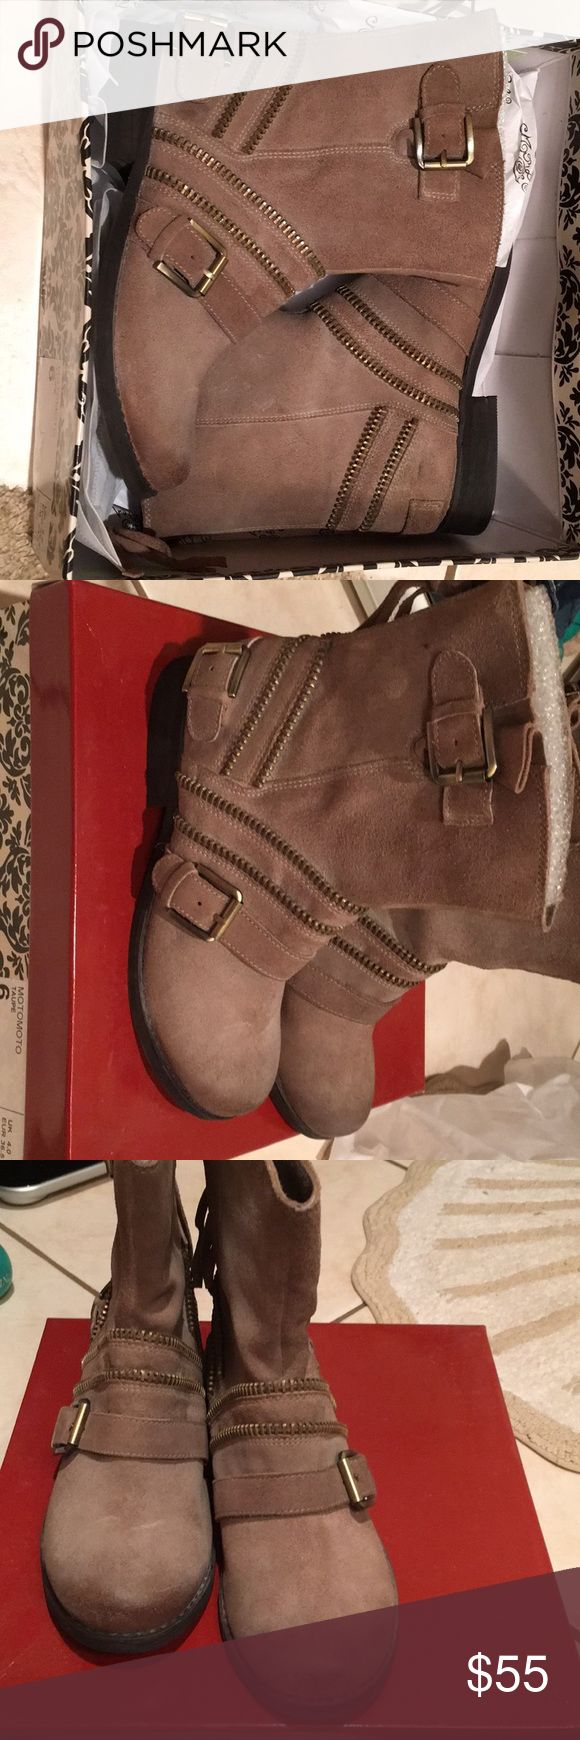 Naughty Monkey Moto boots 6 NEW taupe Naughty Monkey taupe moto boots size 6 New in box Naughty Monkey Shoes Combat & Moto Boots